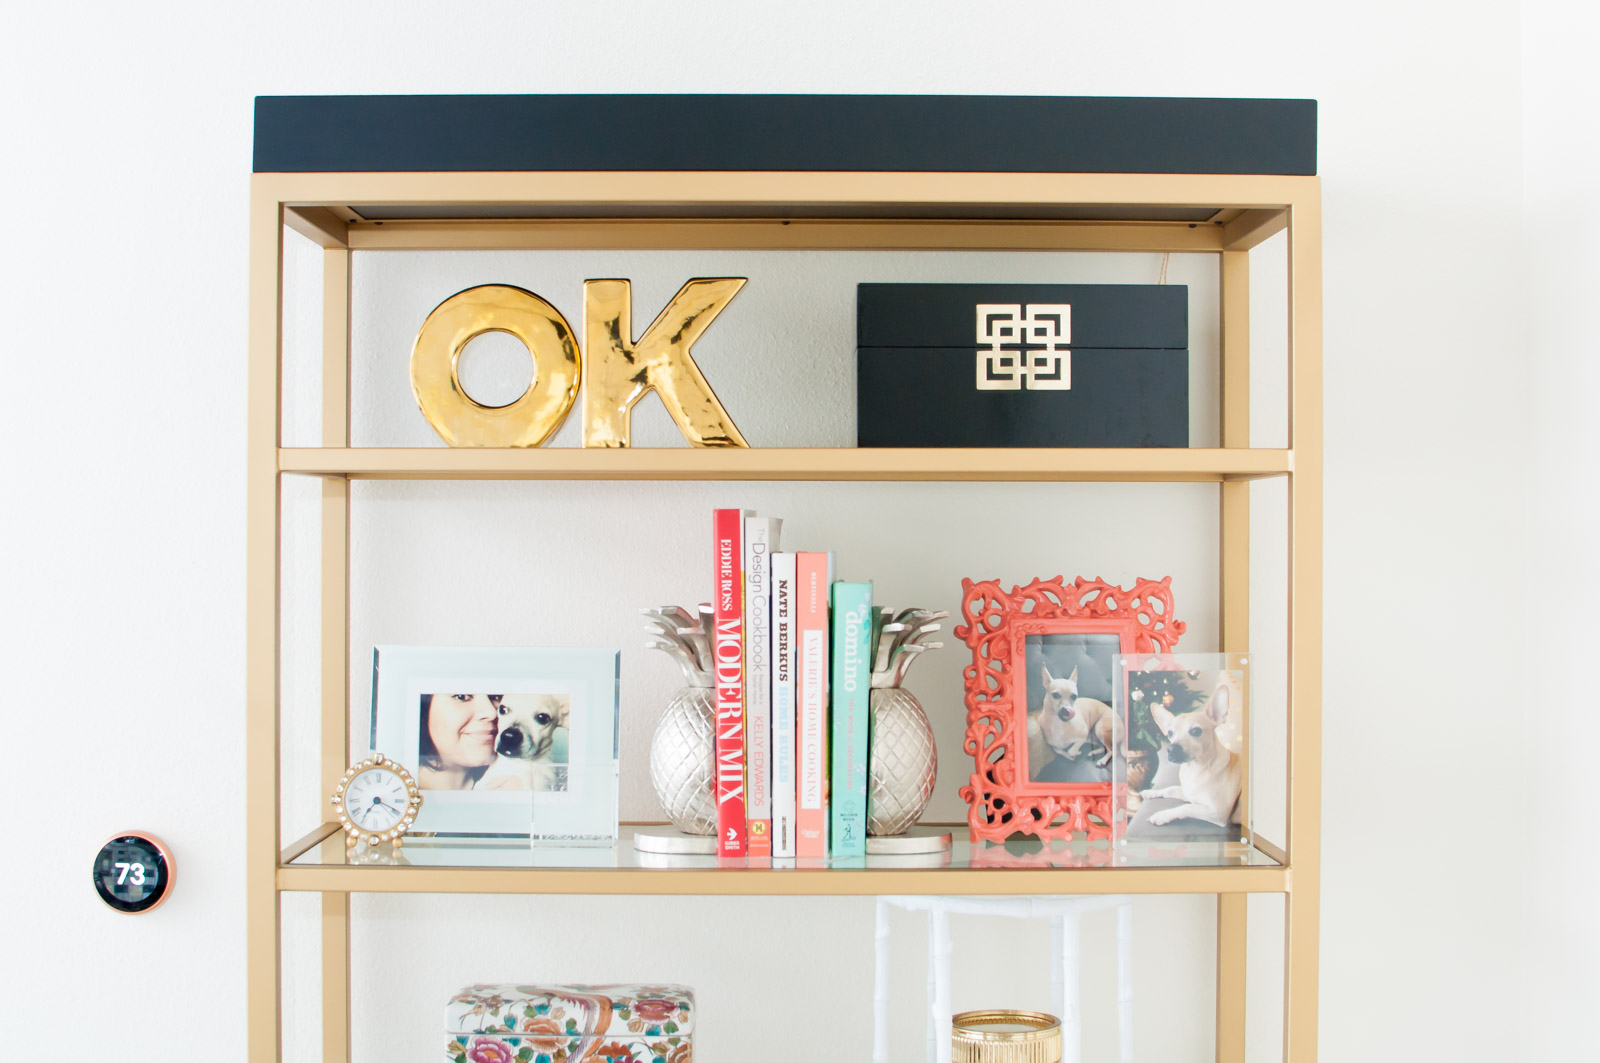 Chic ideas and tips for styling a bookcase or etagere.